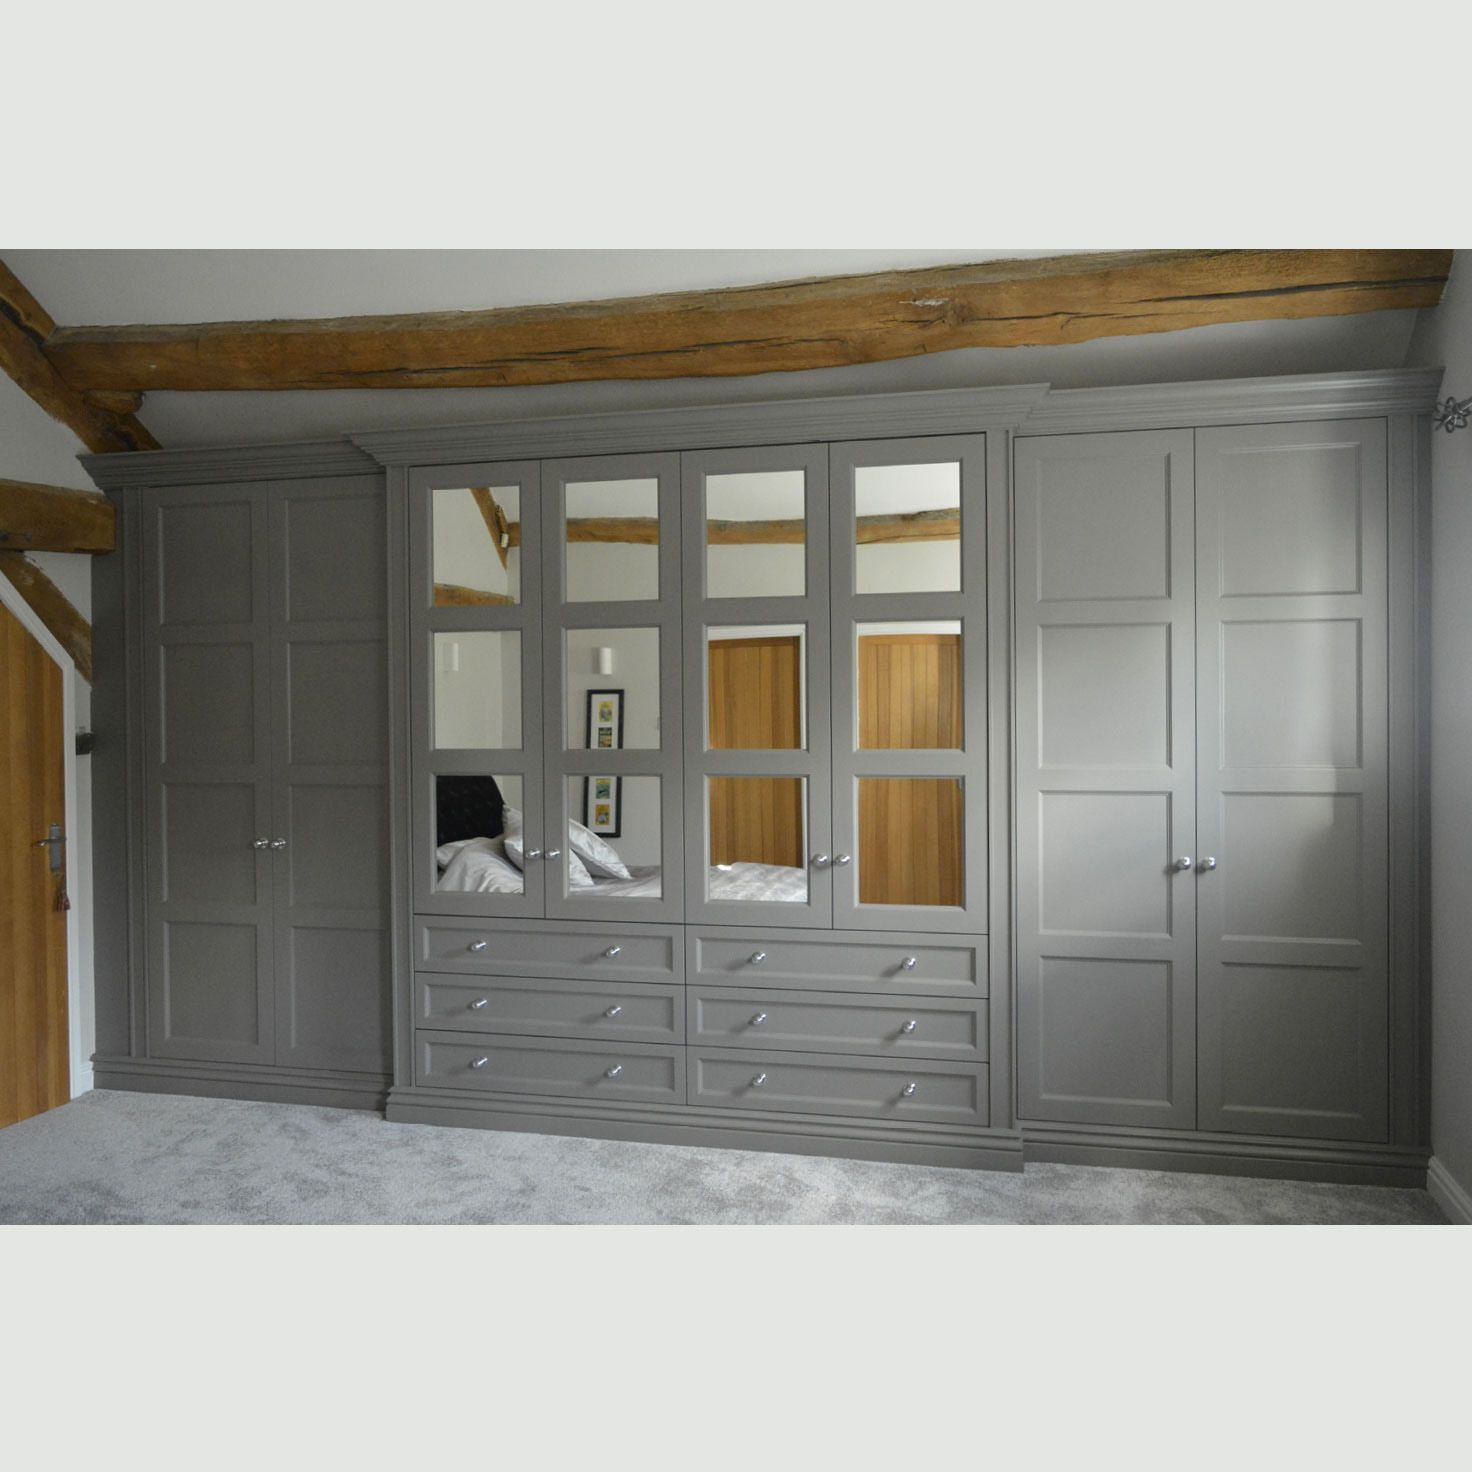 Windsor Wardrobe Design | Bespoke Built In Fitted Wardrobes London